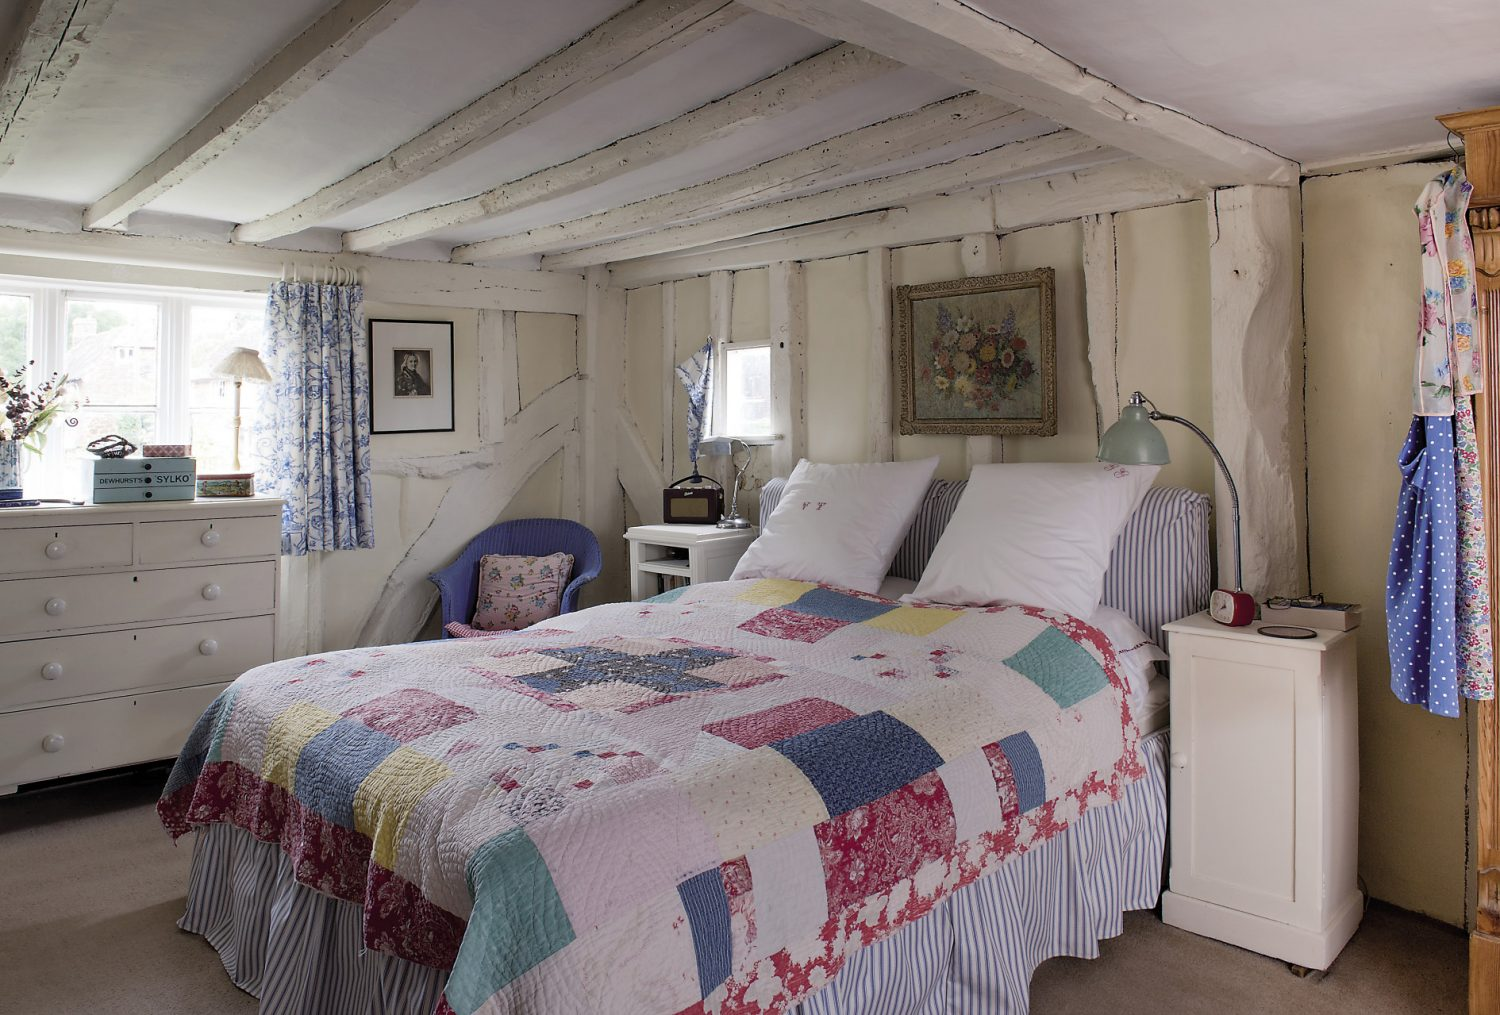 The bedrooms are full of vintage charm, with wonderful old patchwork quilts being used as wall hangings. On the beds are glorious quilts and, dotted among hats, scarves and bedroom bits and bobs are yet more neat piles of quaint old fabrics